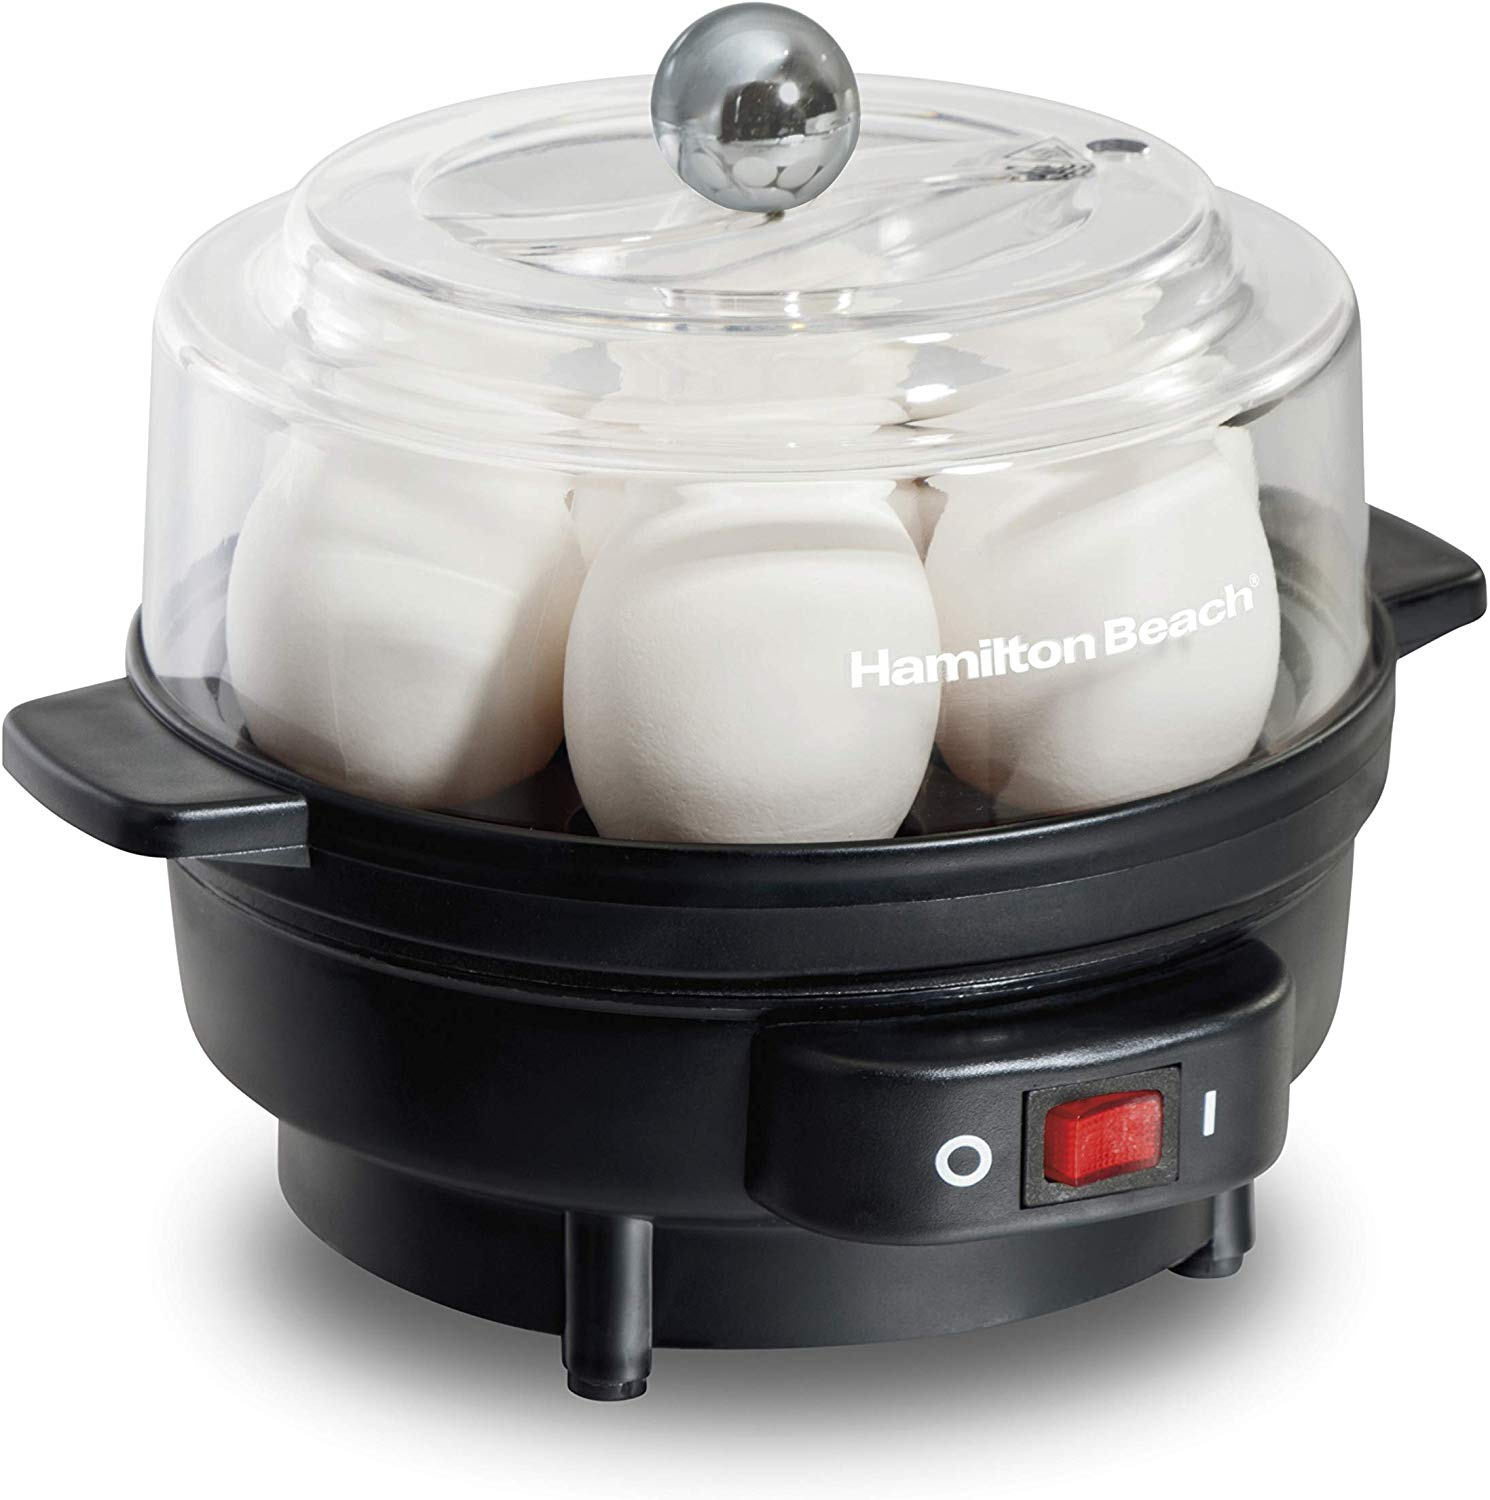 Hamilton Beach Electric Egg Cooker and Poacher for Soft, Hard Boiled or Poached with Ready Timer